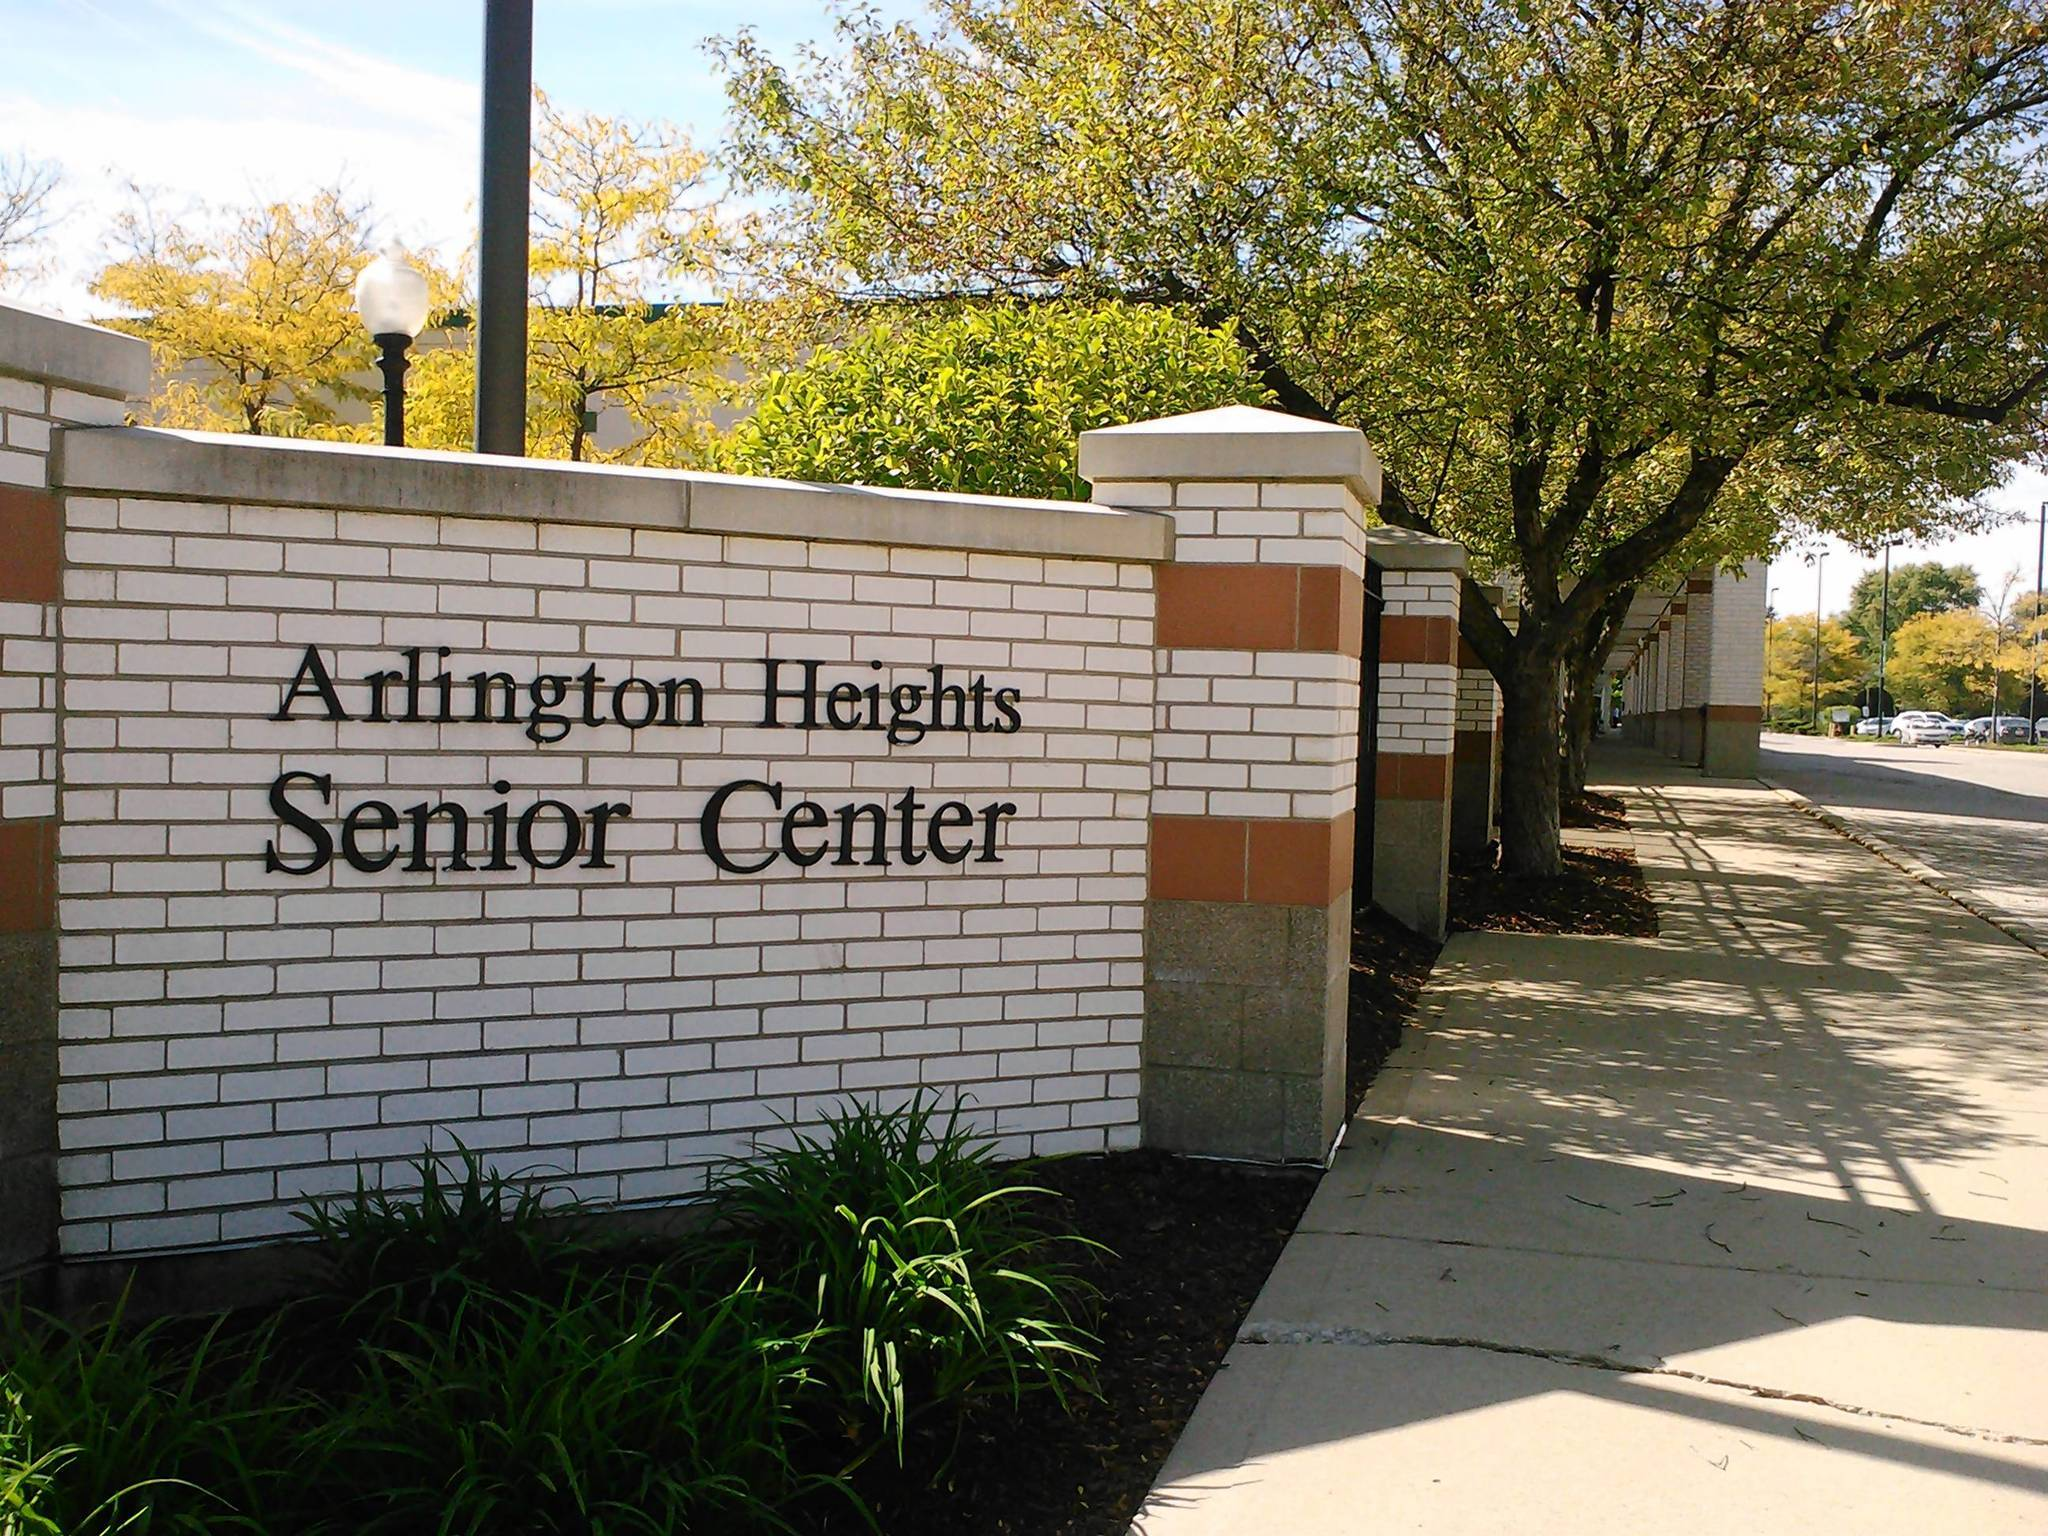 arlington heights senior personals Chicagoland singles provides dating service for the chicago area   schaumburg, arlington heights, palatine, st charles, naperville, oak brook,  highland park  or senior singles, matchmaking, speed dating events or local  singles close by.